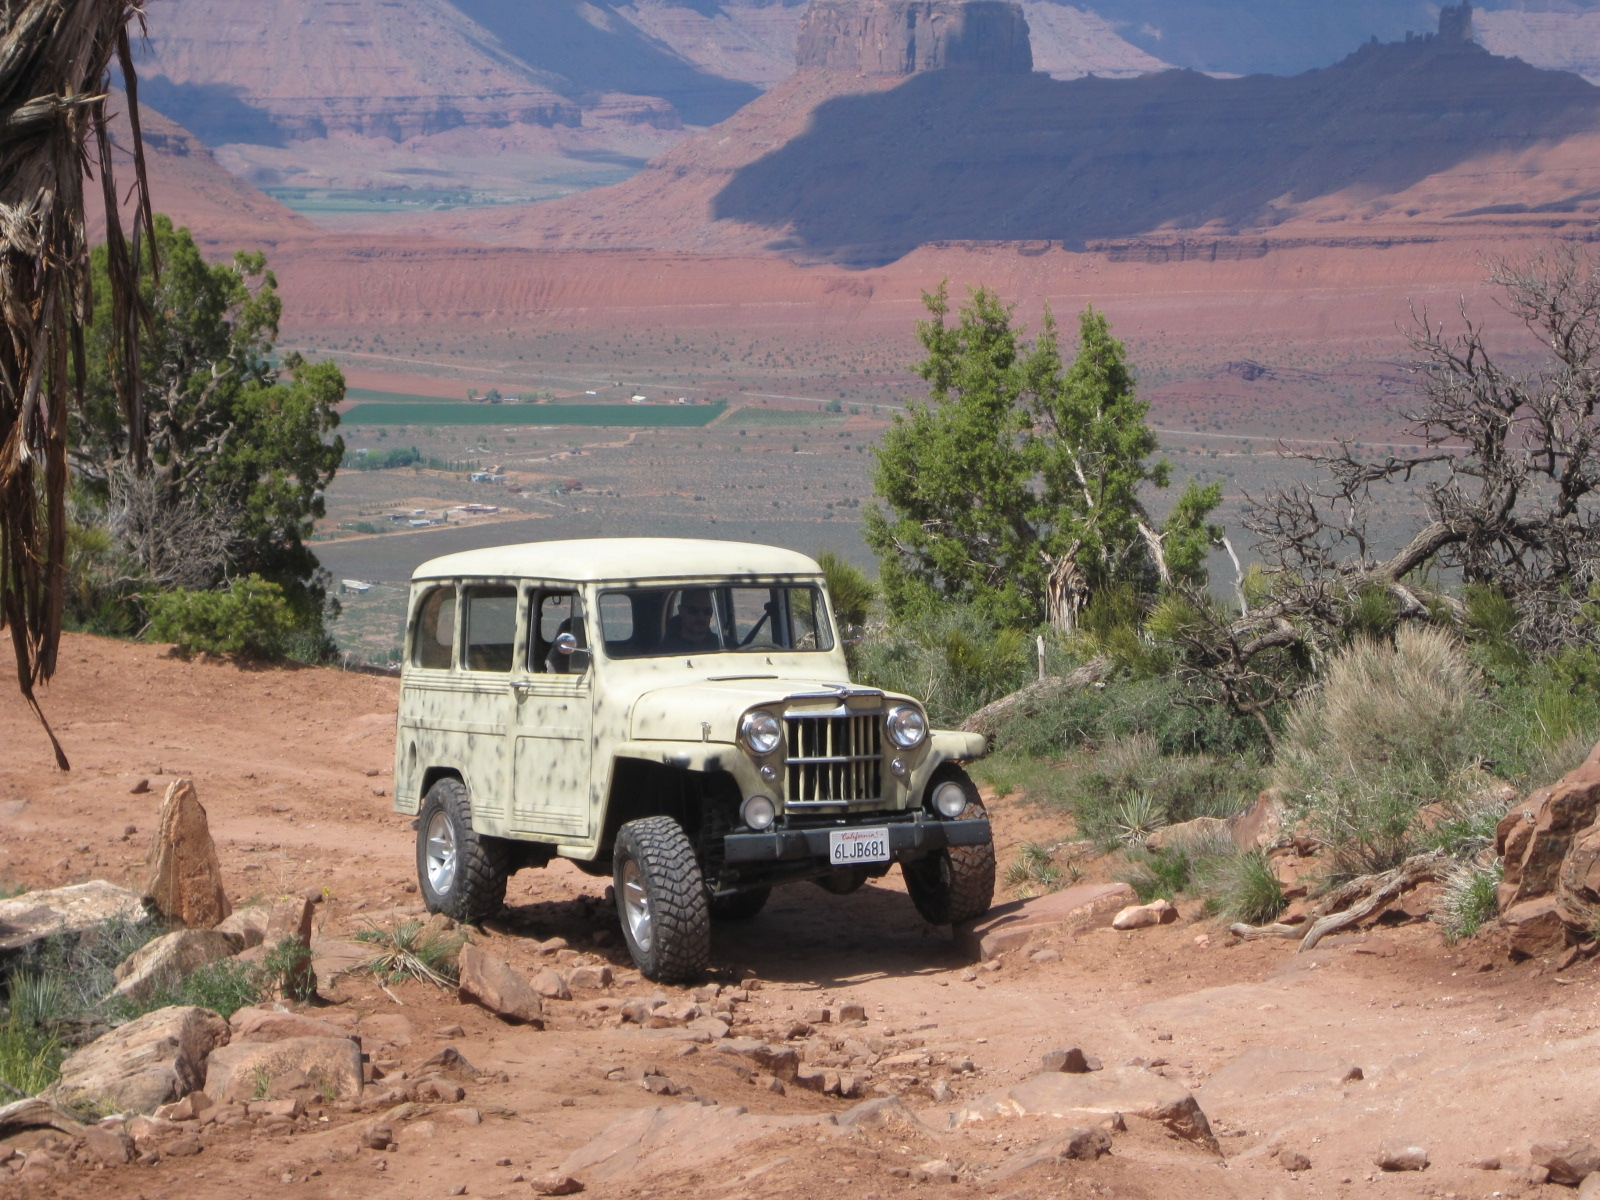 dimmwatt's 1957 Willys Wagon